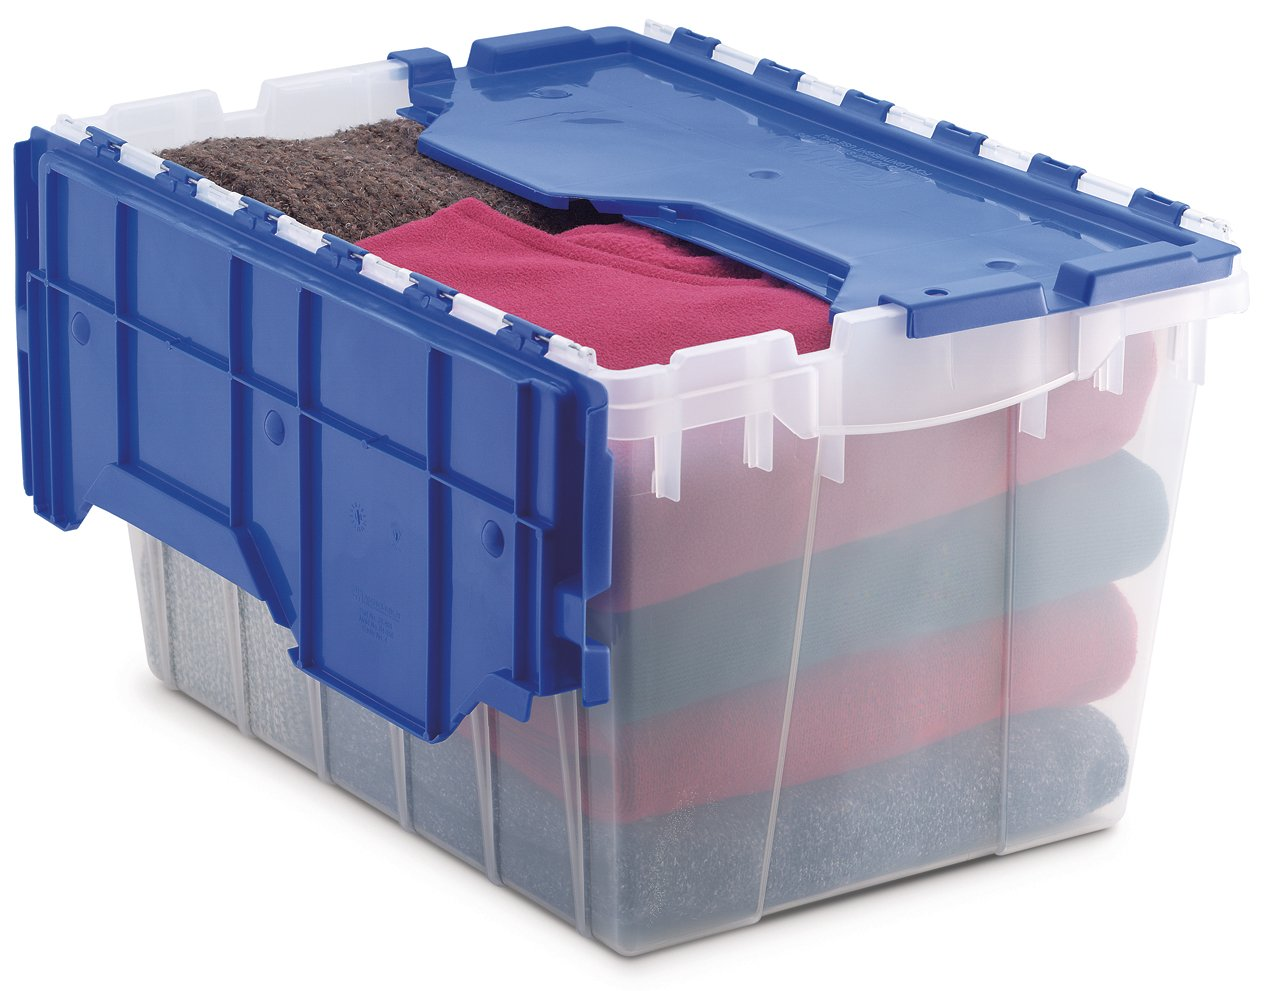 Akro-Mils 66486 CLDBL 12-Gallon Plastic Storage KeepBox with Attached Lid, 21-1/2-Inch by 15-Inch by 12-1/2-Inch, Semi Clear by Akro-Mils